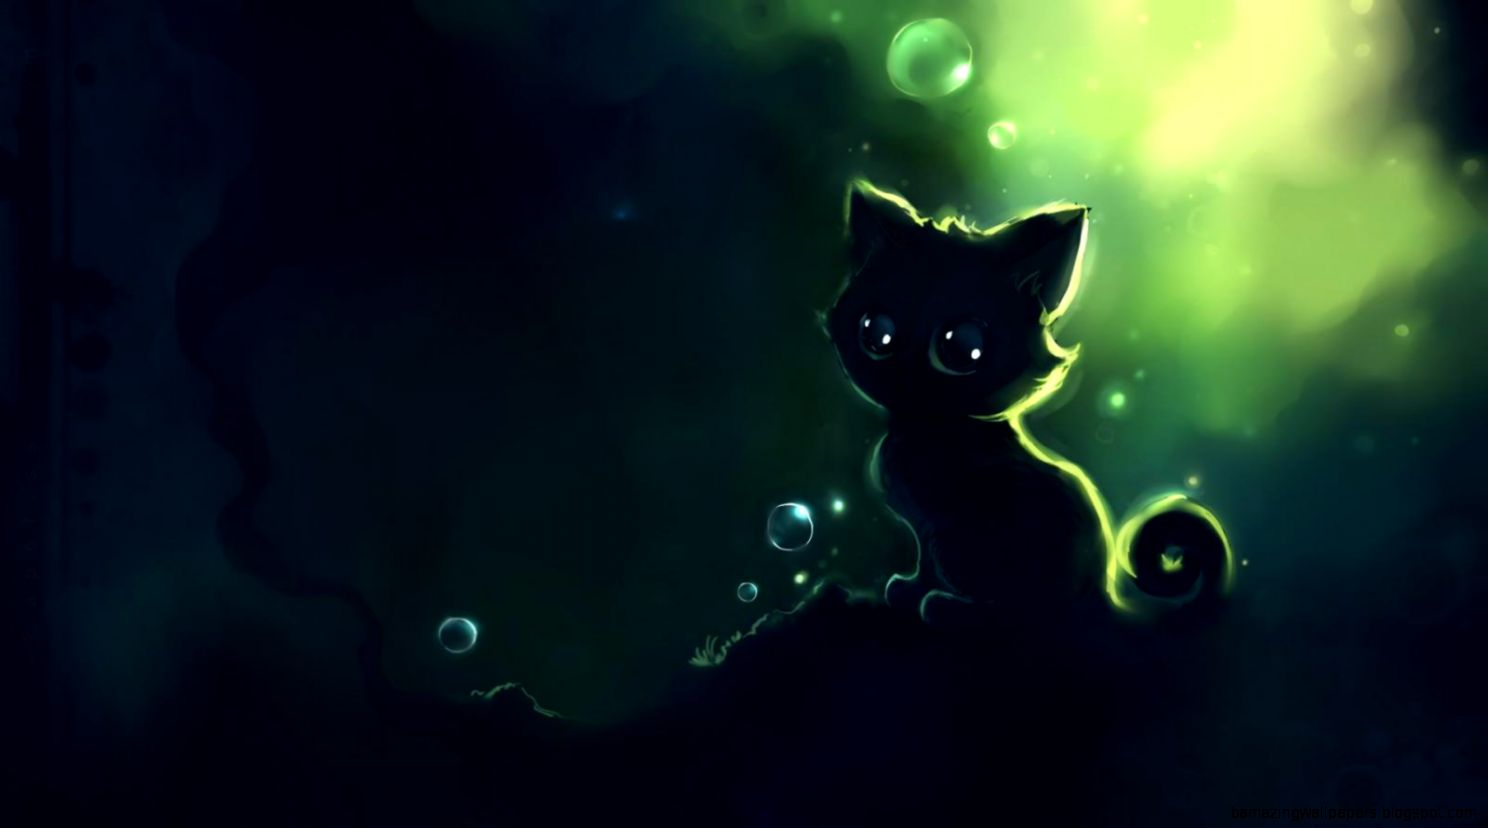 Cute anime kitten wallpaper amazing wallpapers - Anime cat wallpaper ...